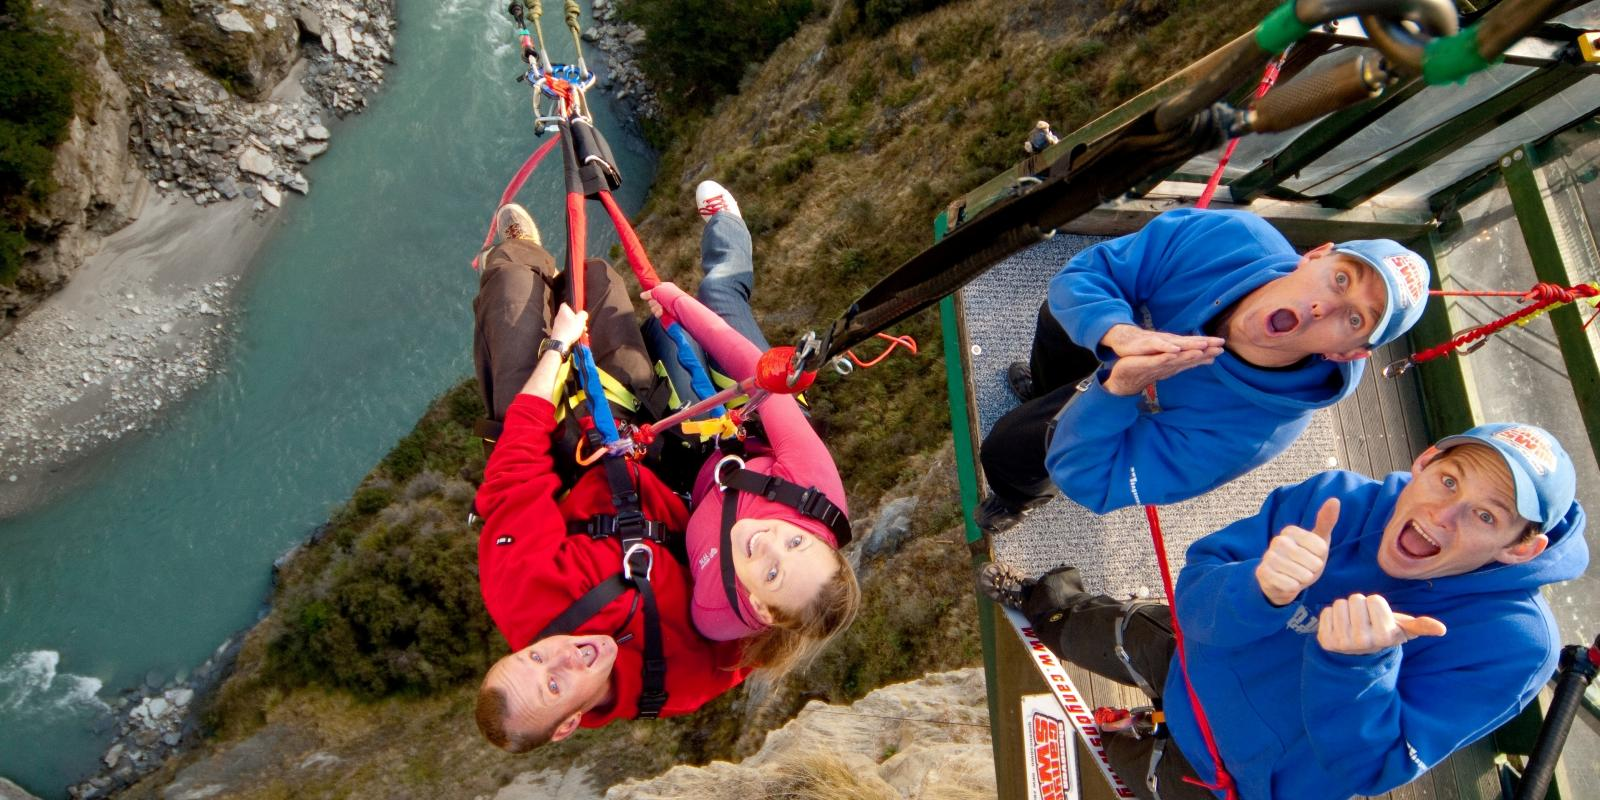 Shotover Canyon Swing in action